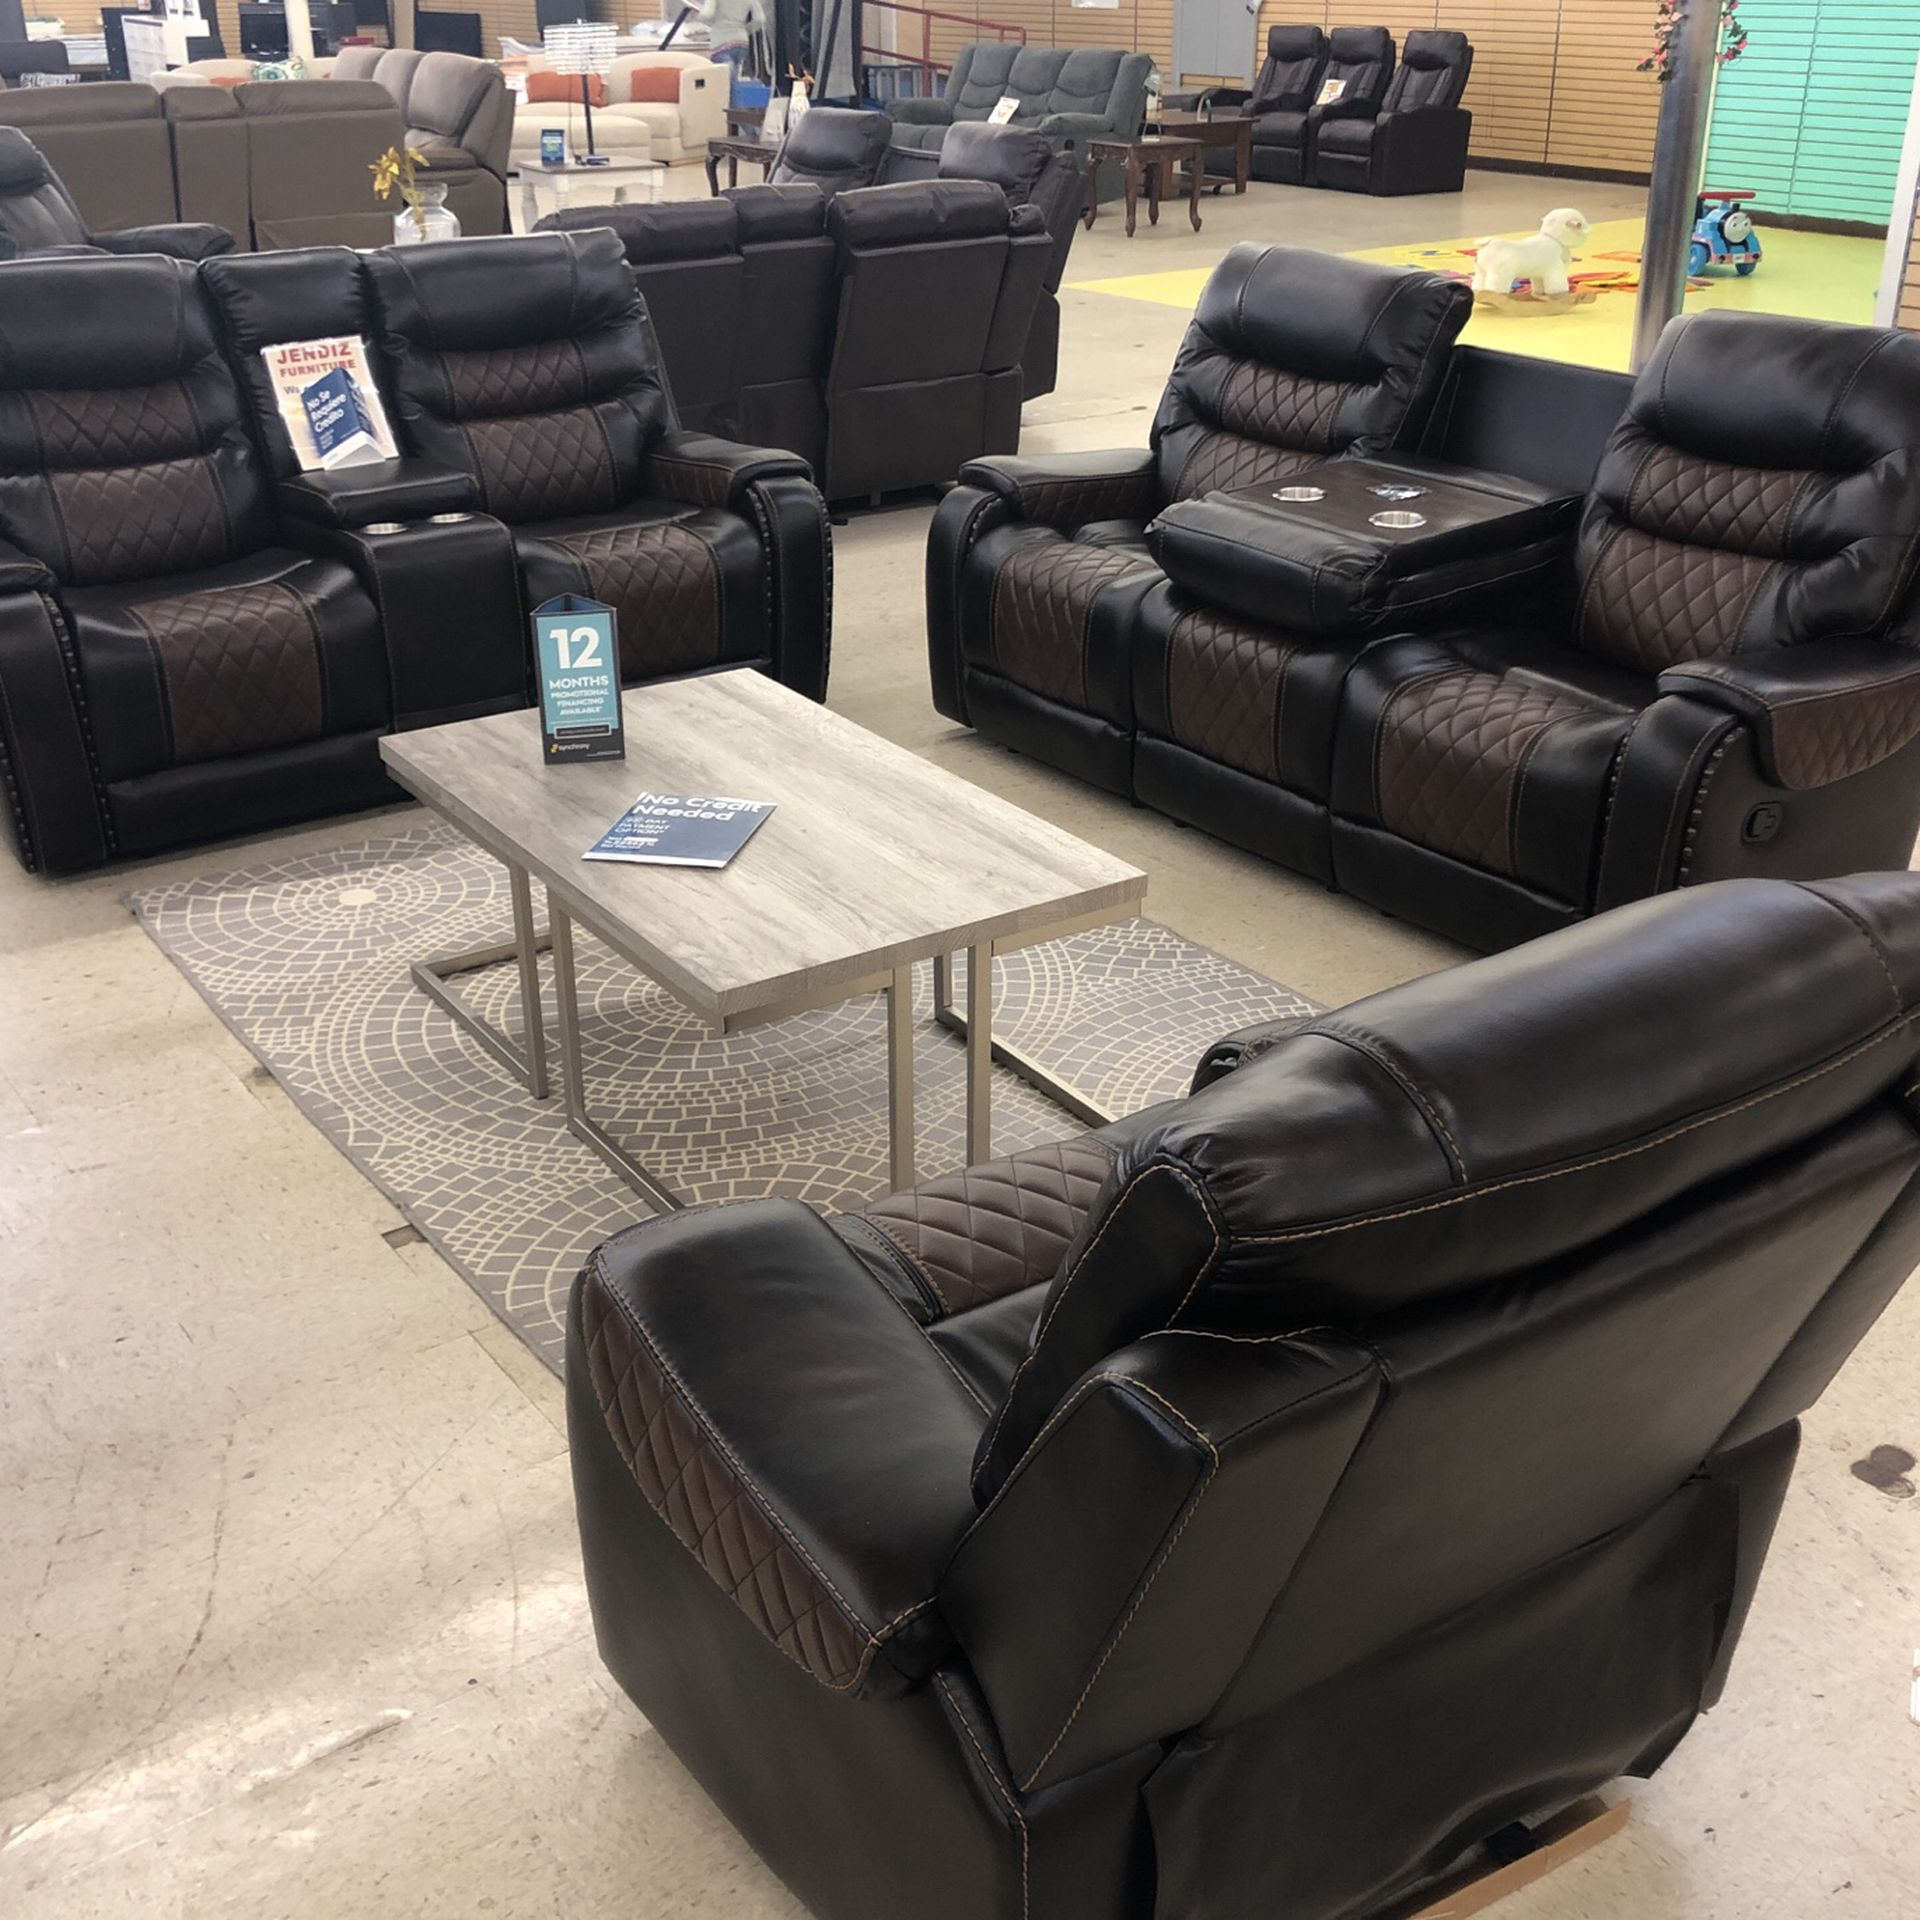 BRAND NEW SOFA LOVESEAT AND CHAIR BROWN LEATHER WITH WIRELESS CHARGER DROP DOWN TABLE ONLY $39 Take It Home 🏡 Today